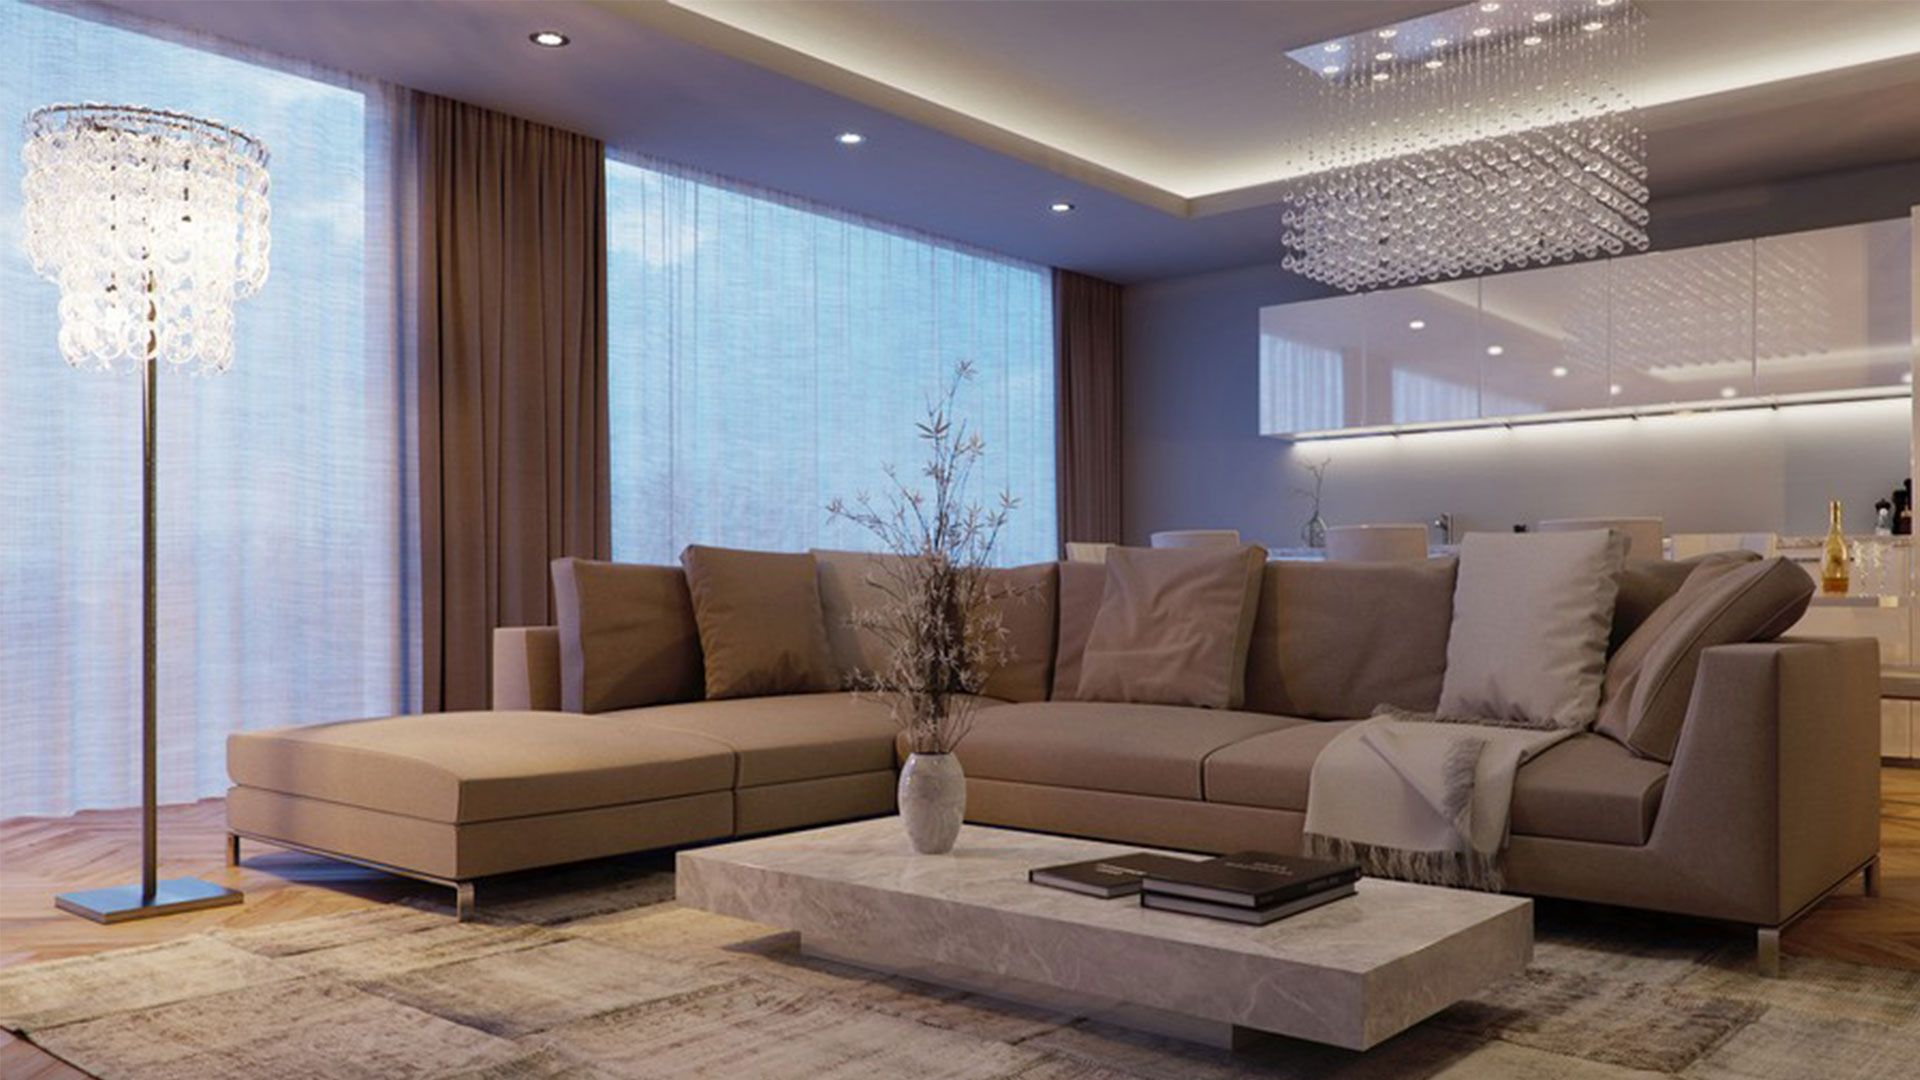 enjoyable neutral l shaped living sofas and low long rectangle cocktail table in modern large space - Modern Living Room Furniture 2014